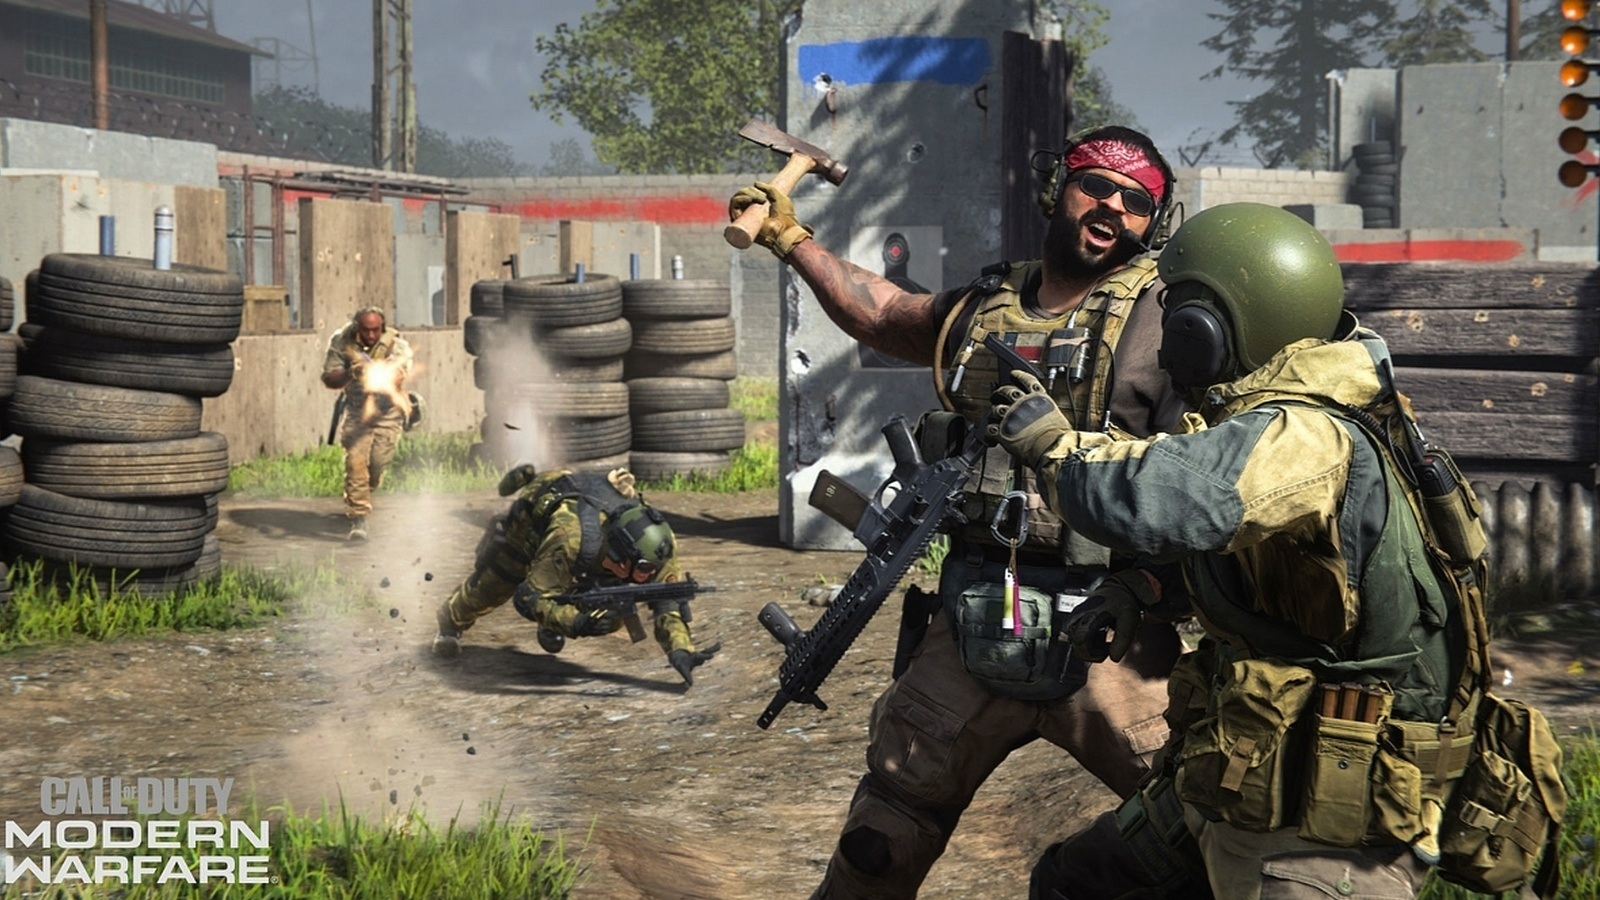 Call of Duty characters fighting within Modern Warfare